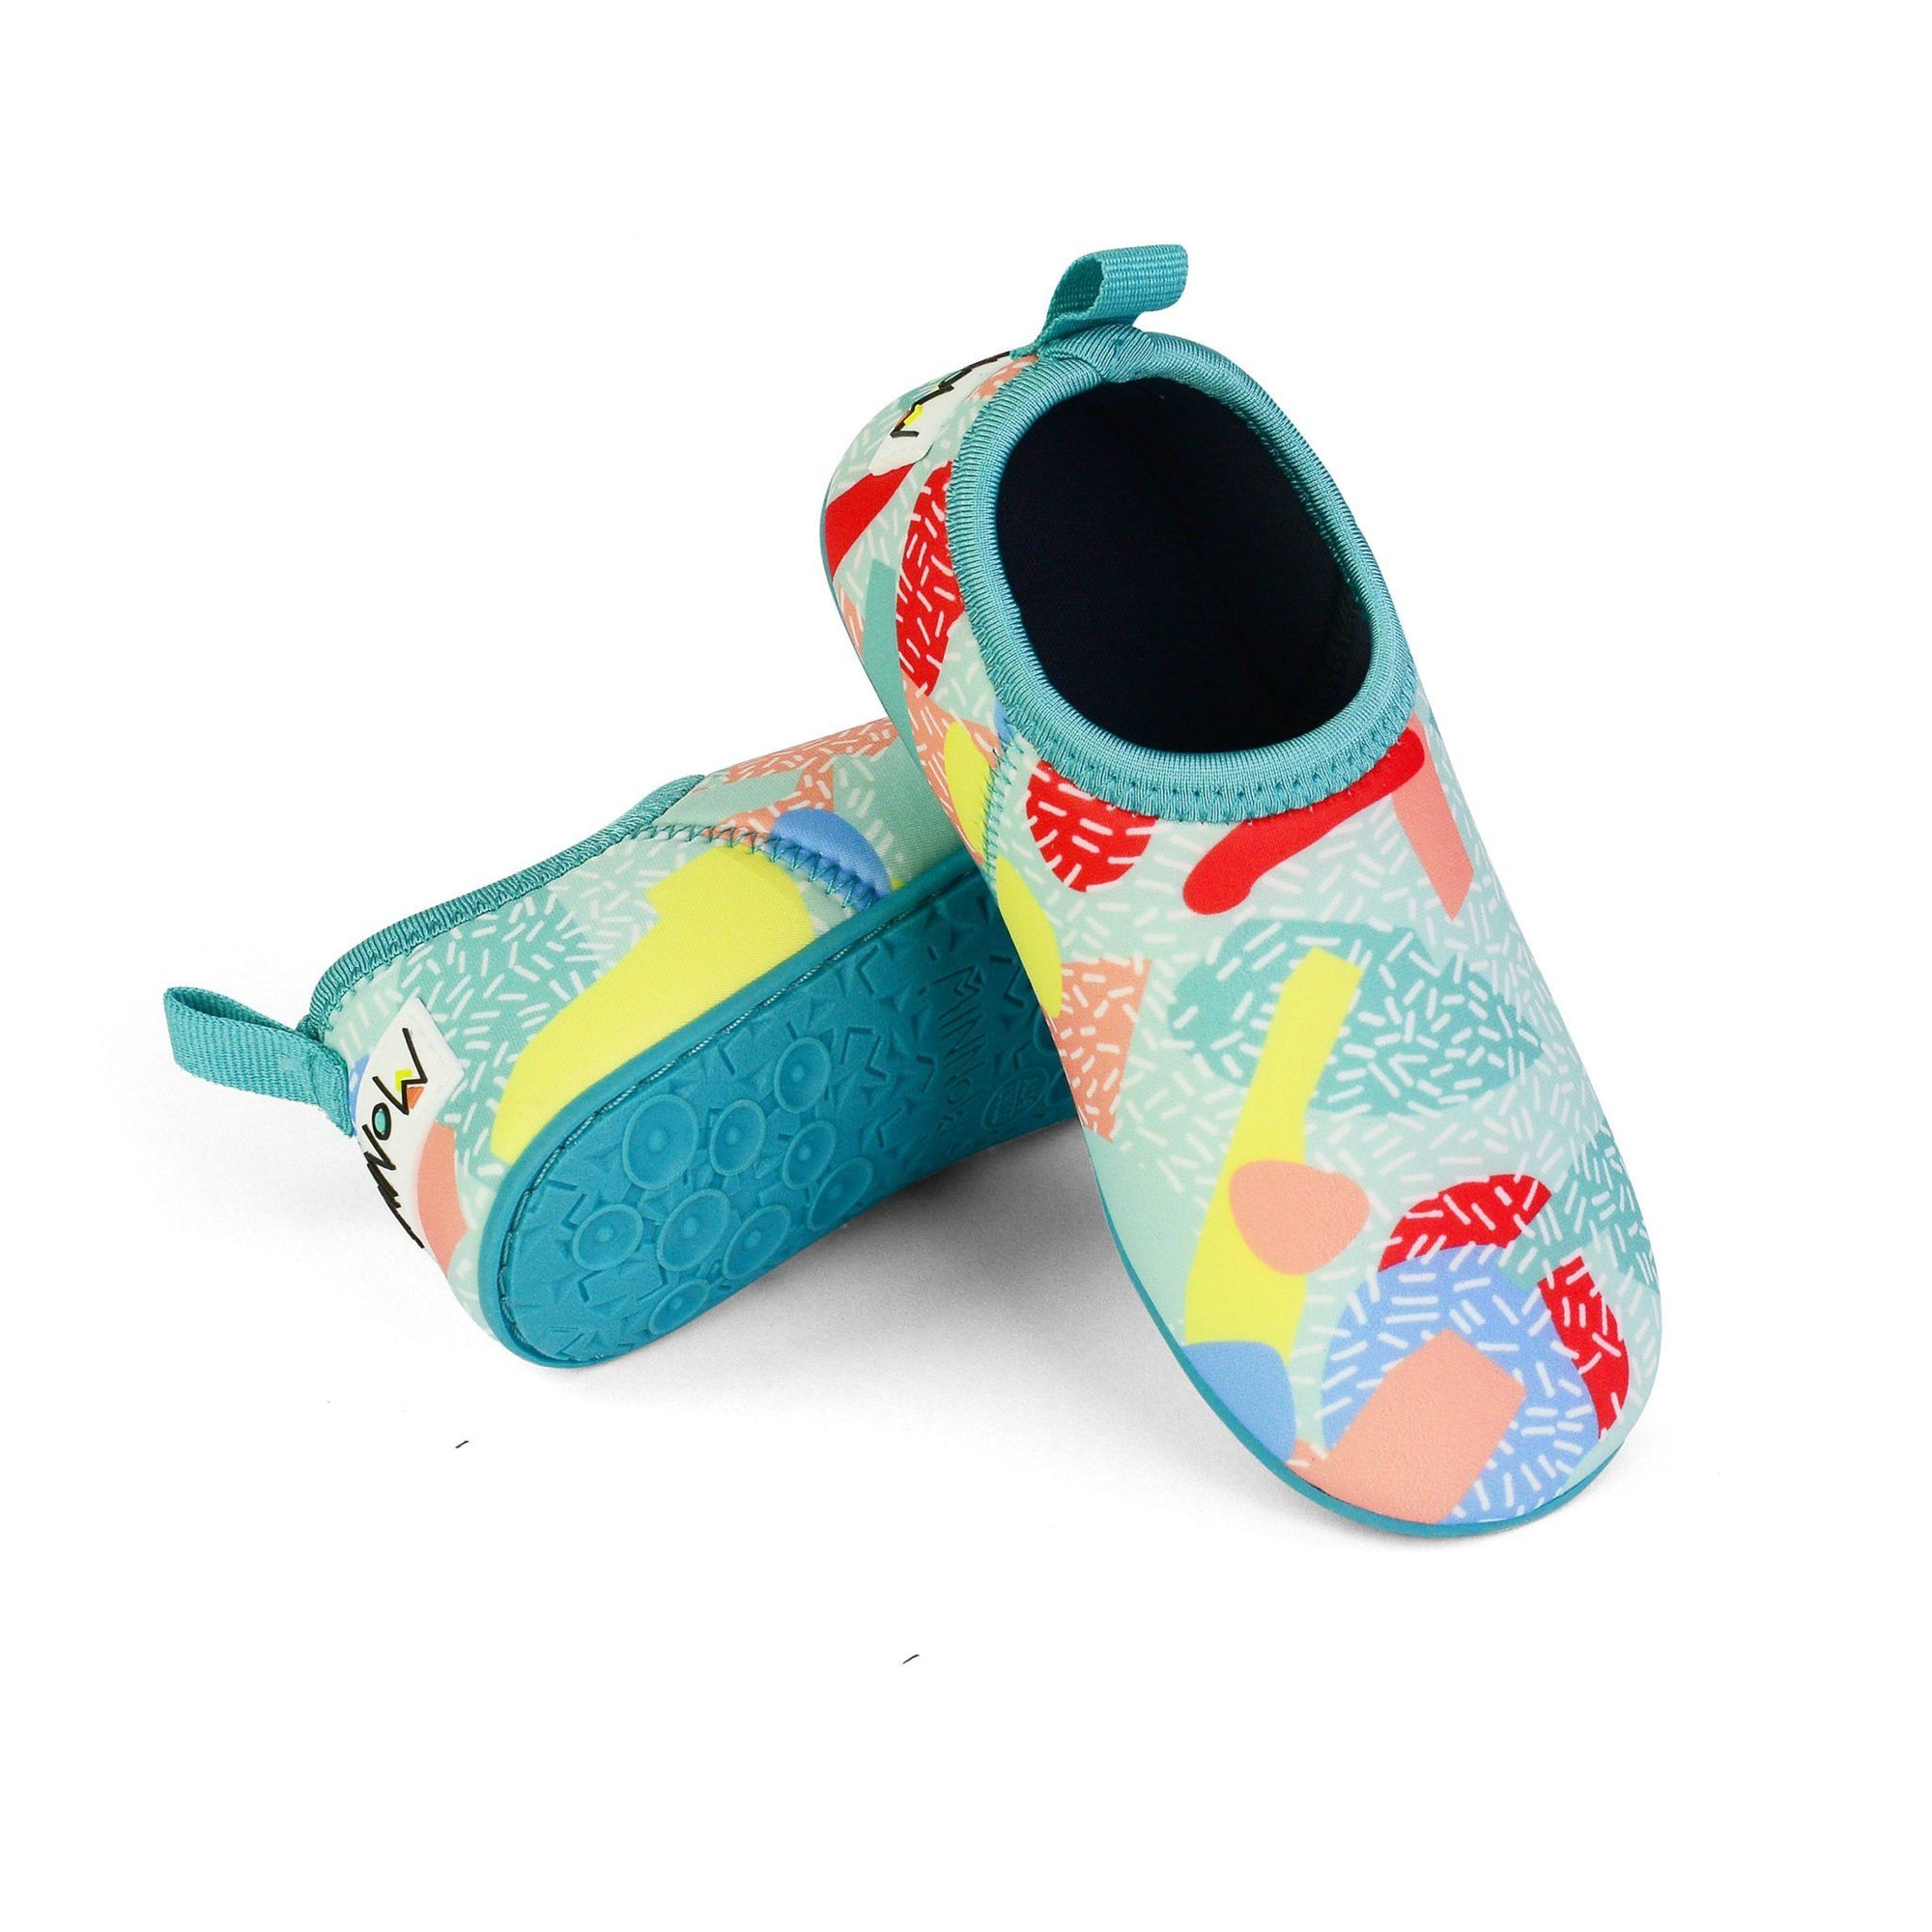 Sprinkles Water Play Shoe